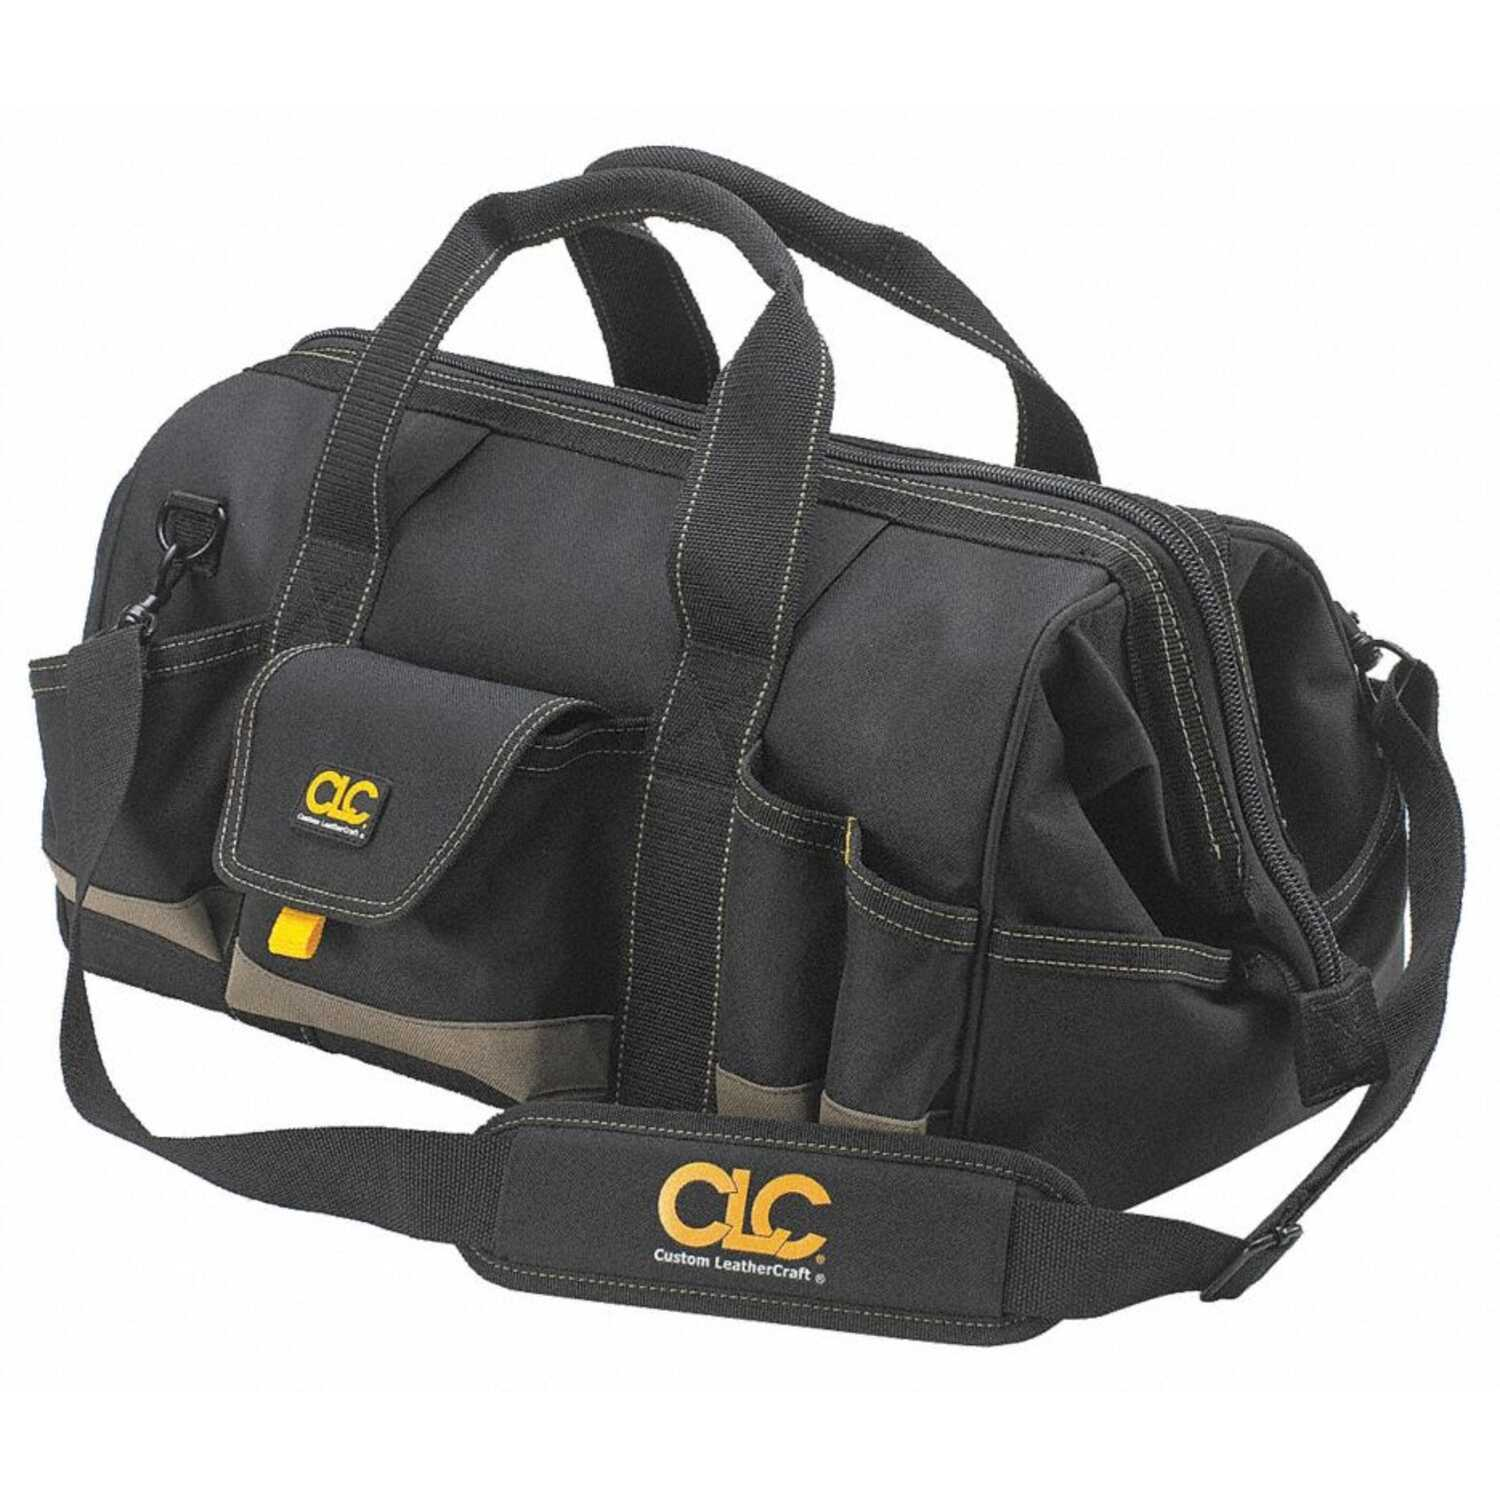 CLC Work Gear  MegaMouth  2.75 in. W x 12 in. H Polyester  Tool Bag  25 pocket Black/Tan  1 pc.